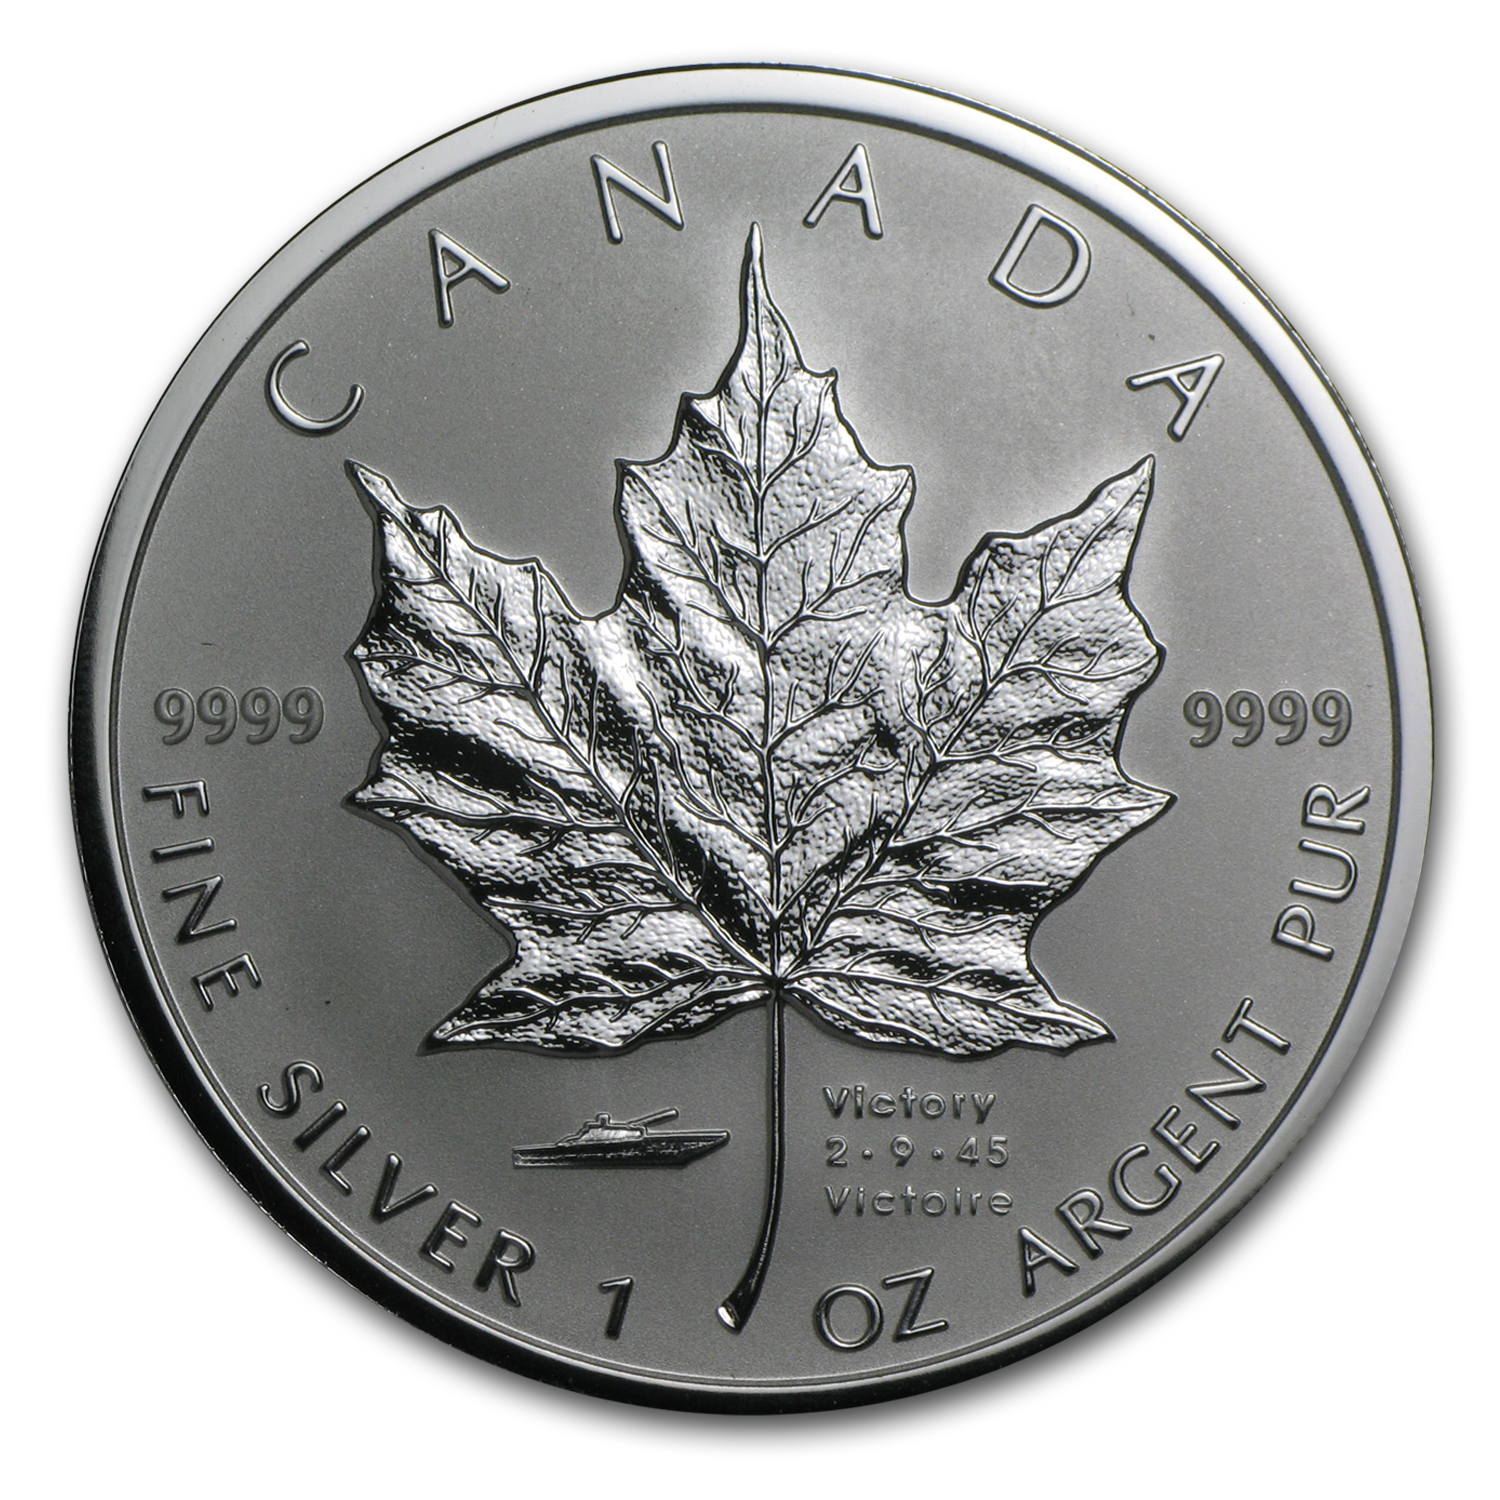 2005 Canada 1 oz Silver Maple Leaf VJ-Day Privy